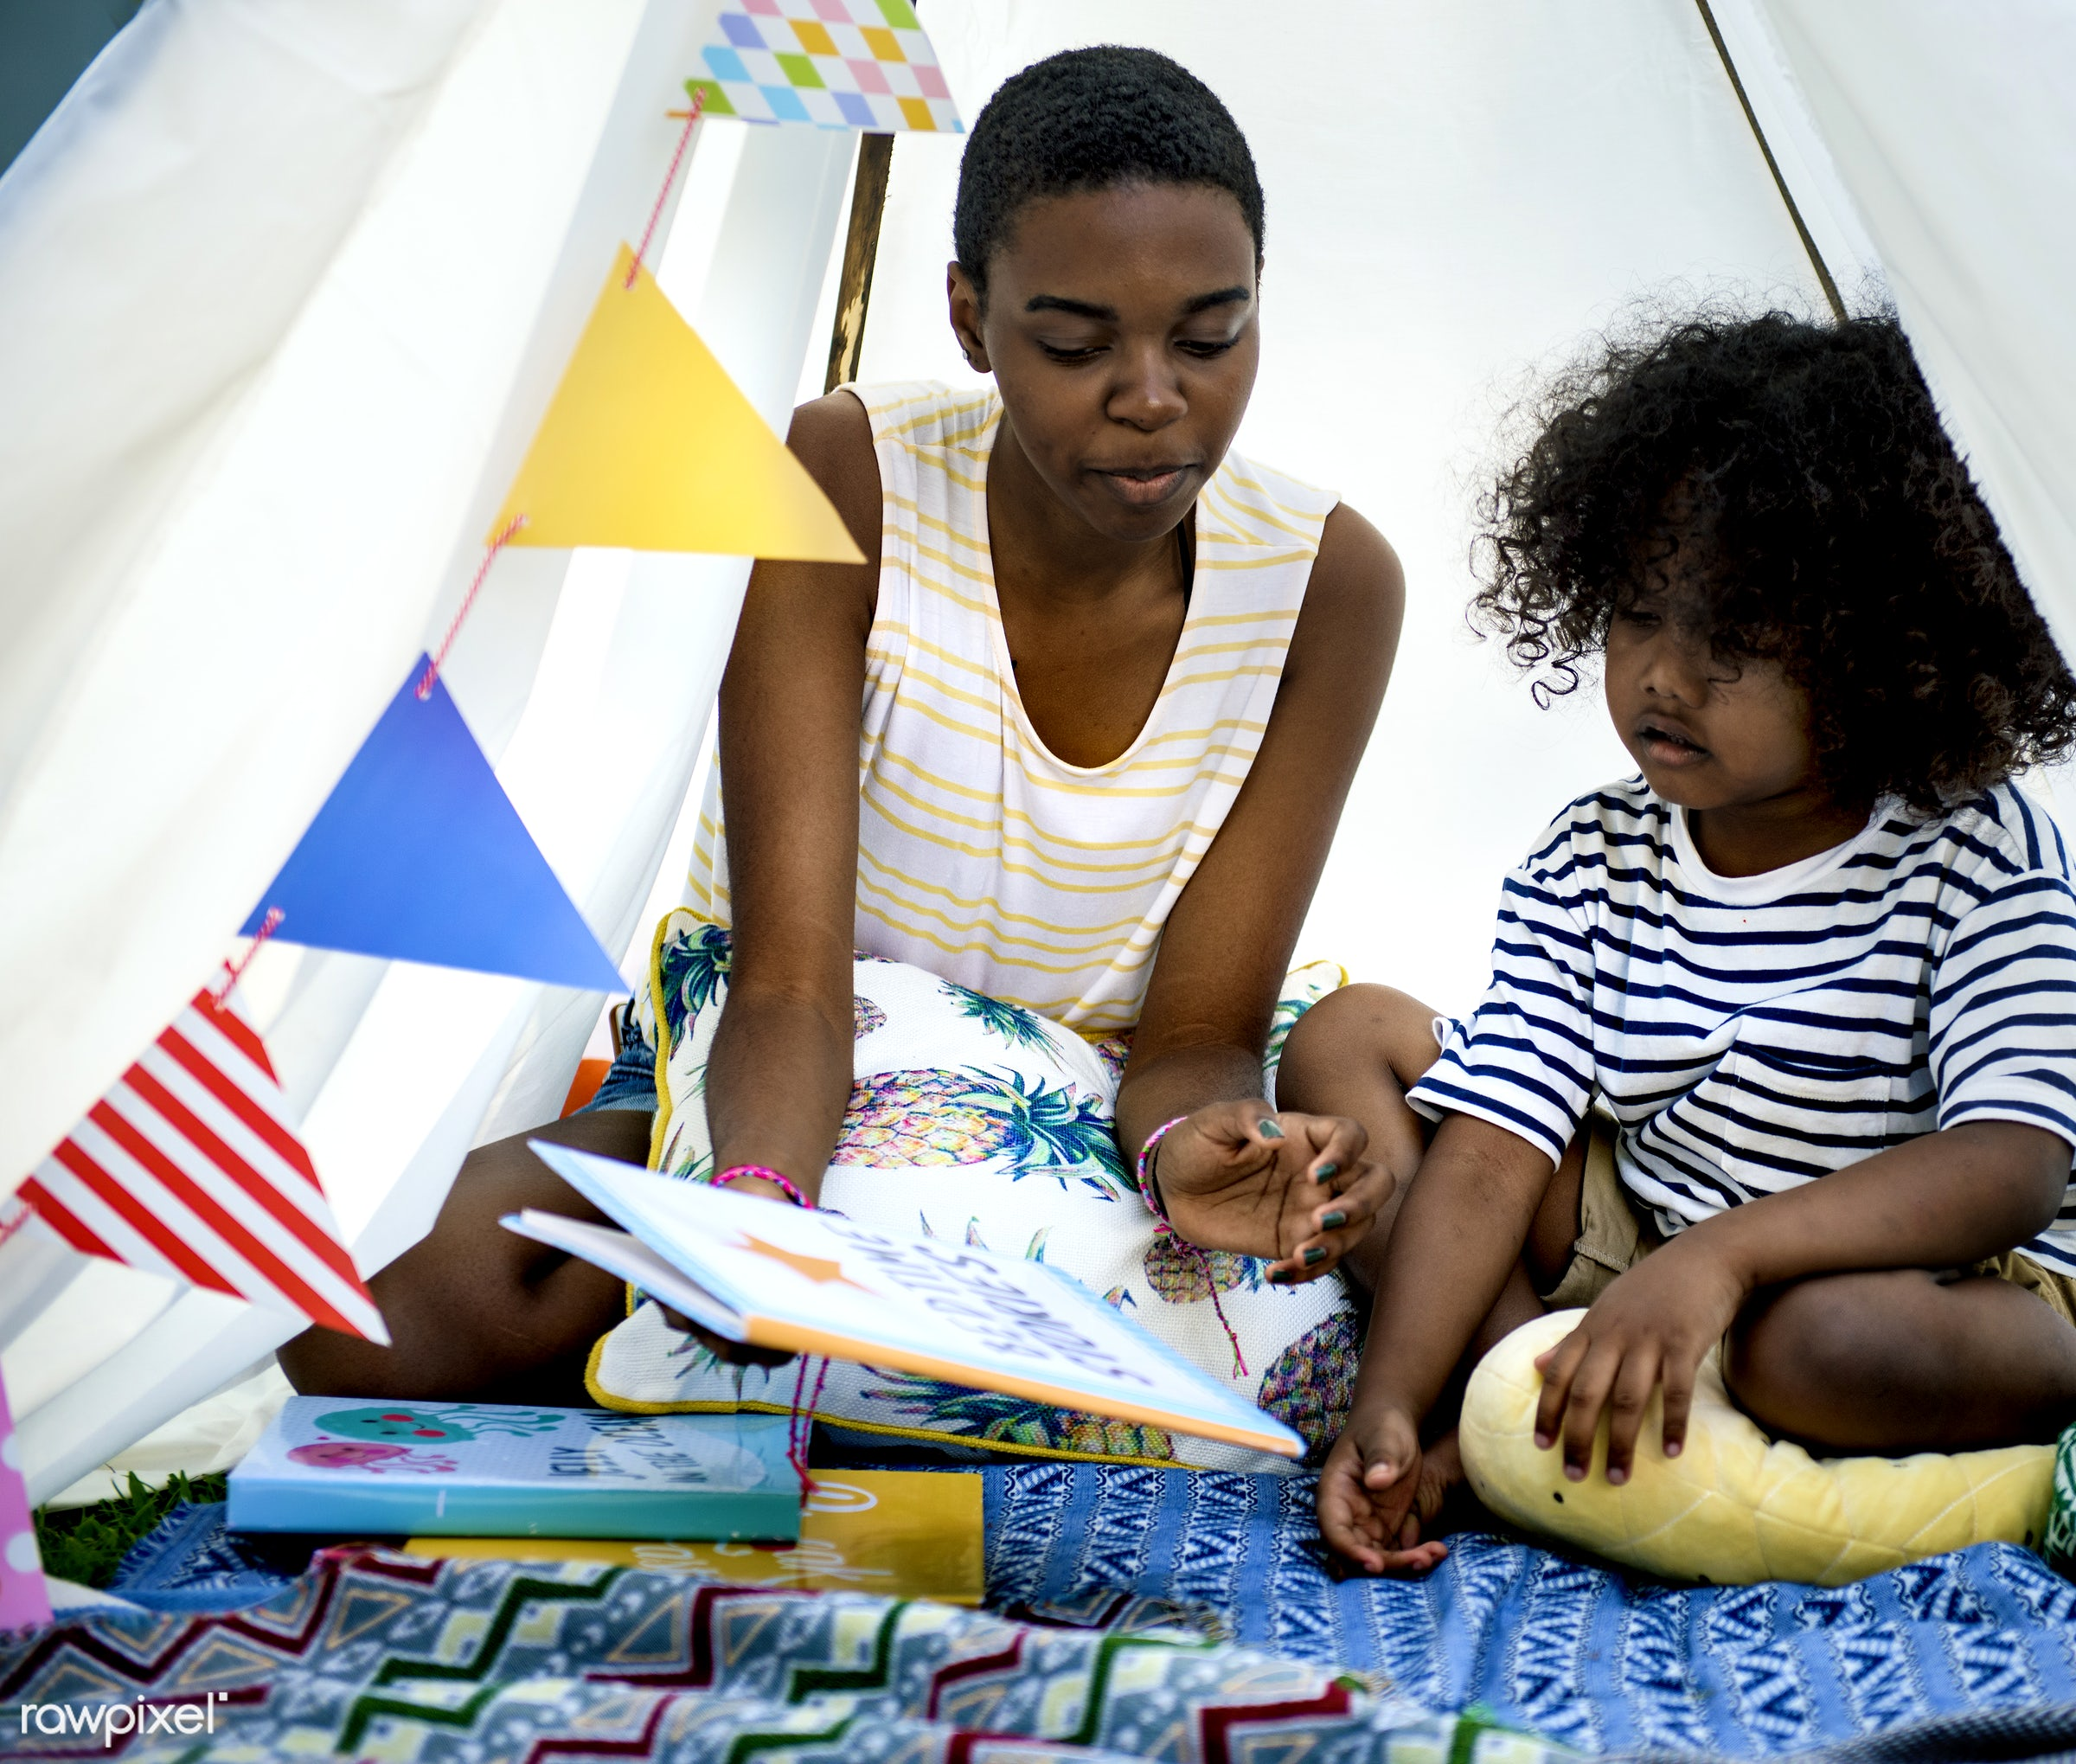 african descent, bedtime story, book, children, fairy tale, girls, kids, leisure, outdoors, people, reading, recreational,...